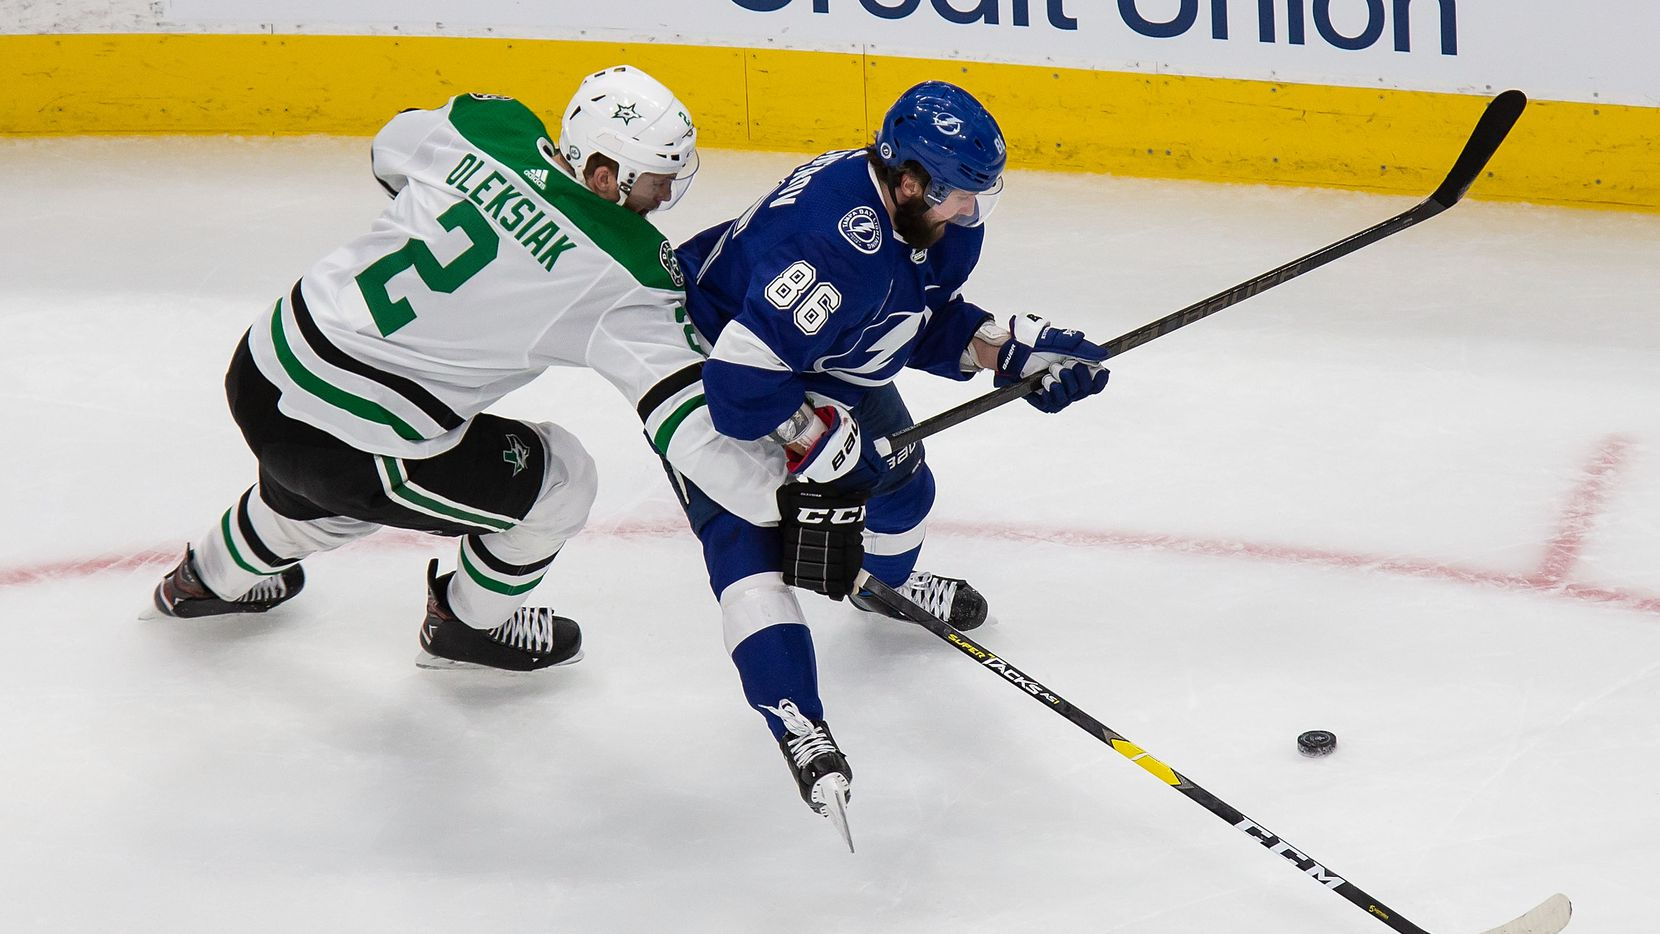 Jamie Oleksiak (2) of the Dallas Stars battles against Nikita Kucherov (86) of the Tampa Bay Lightning during Game One of the Stanley Cup Final at Rogers Place in Edmonton, Alberta, Canada on Saturday, September 19, 2020.